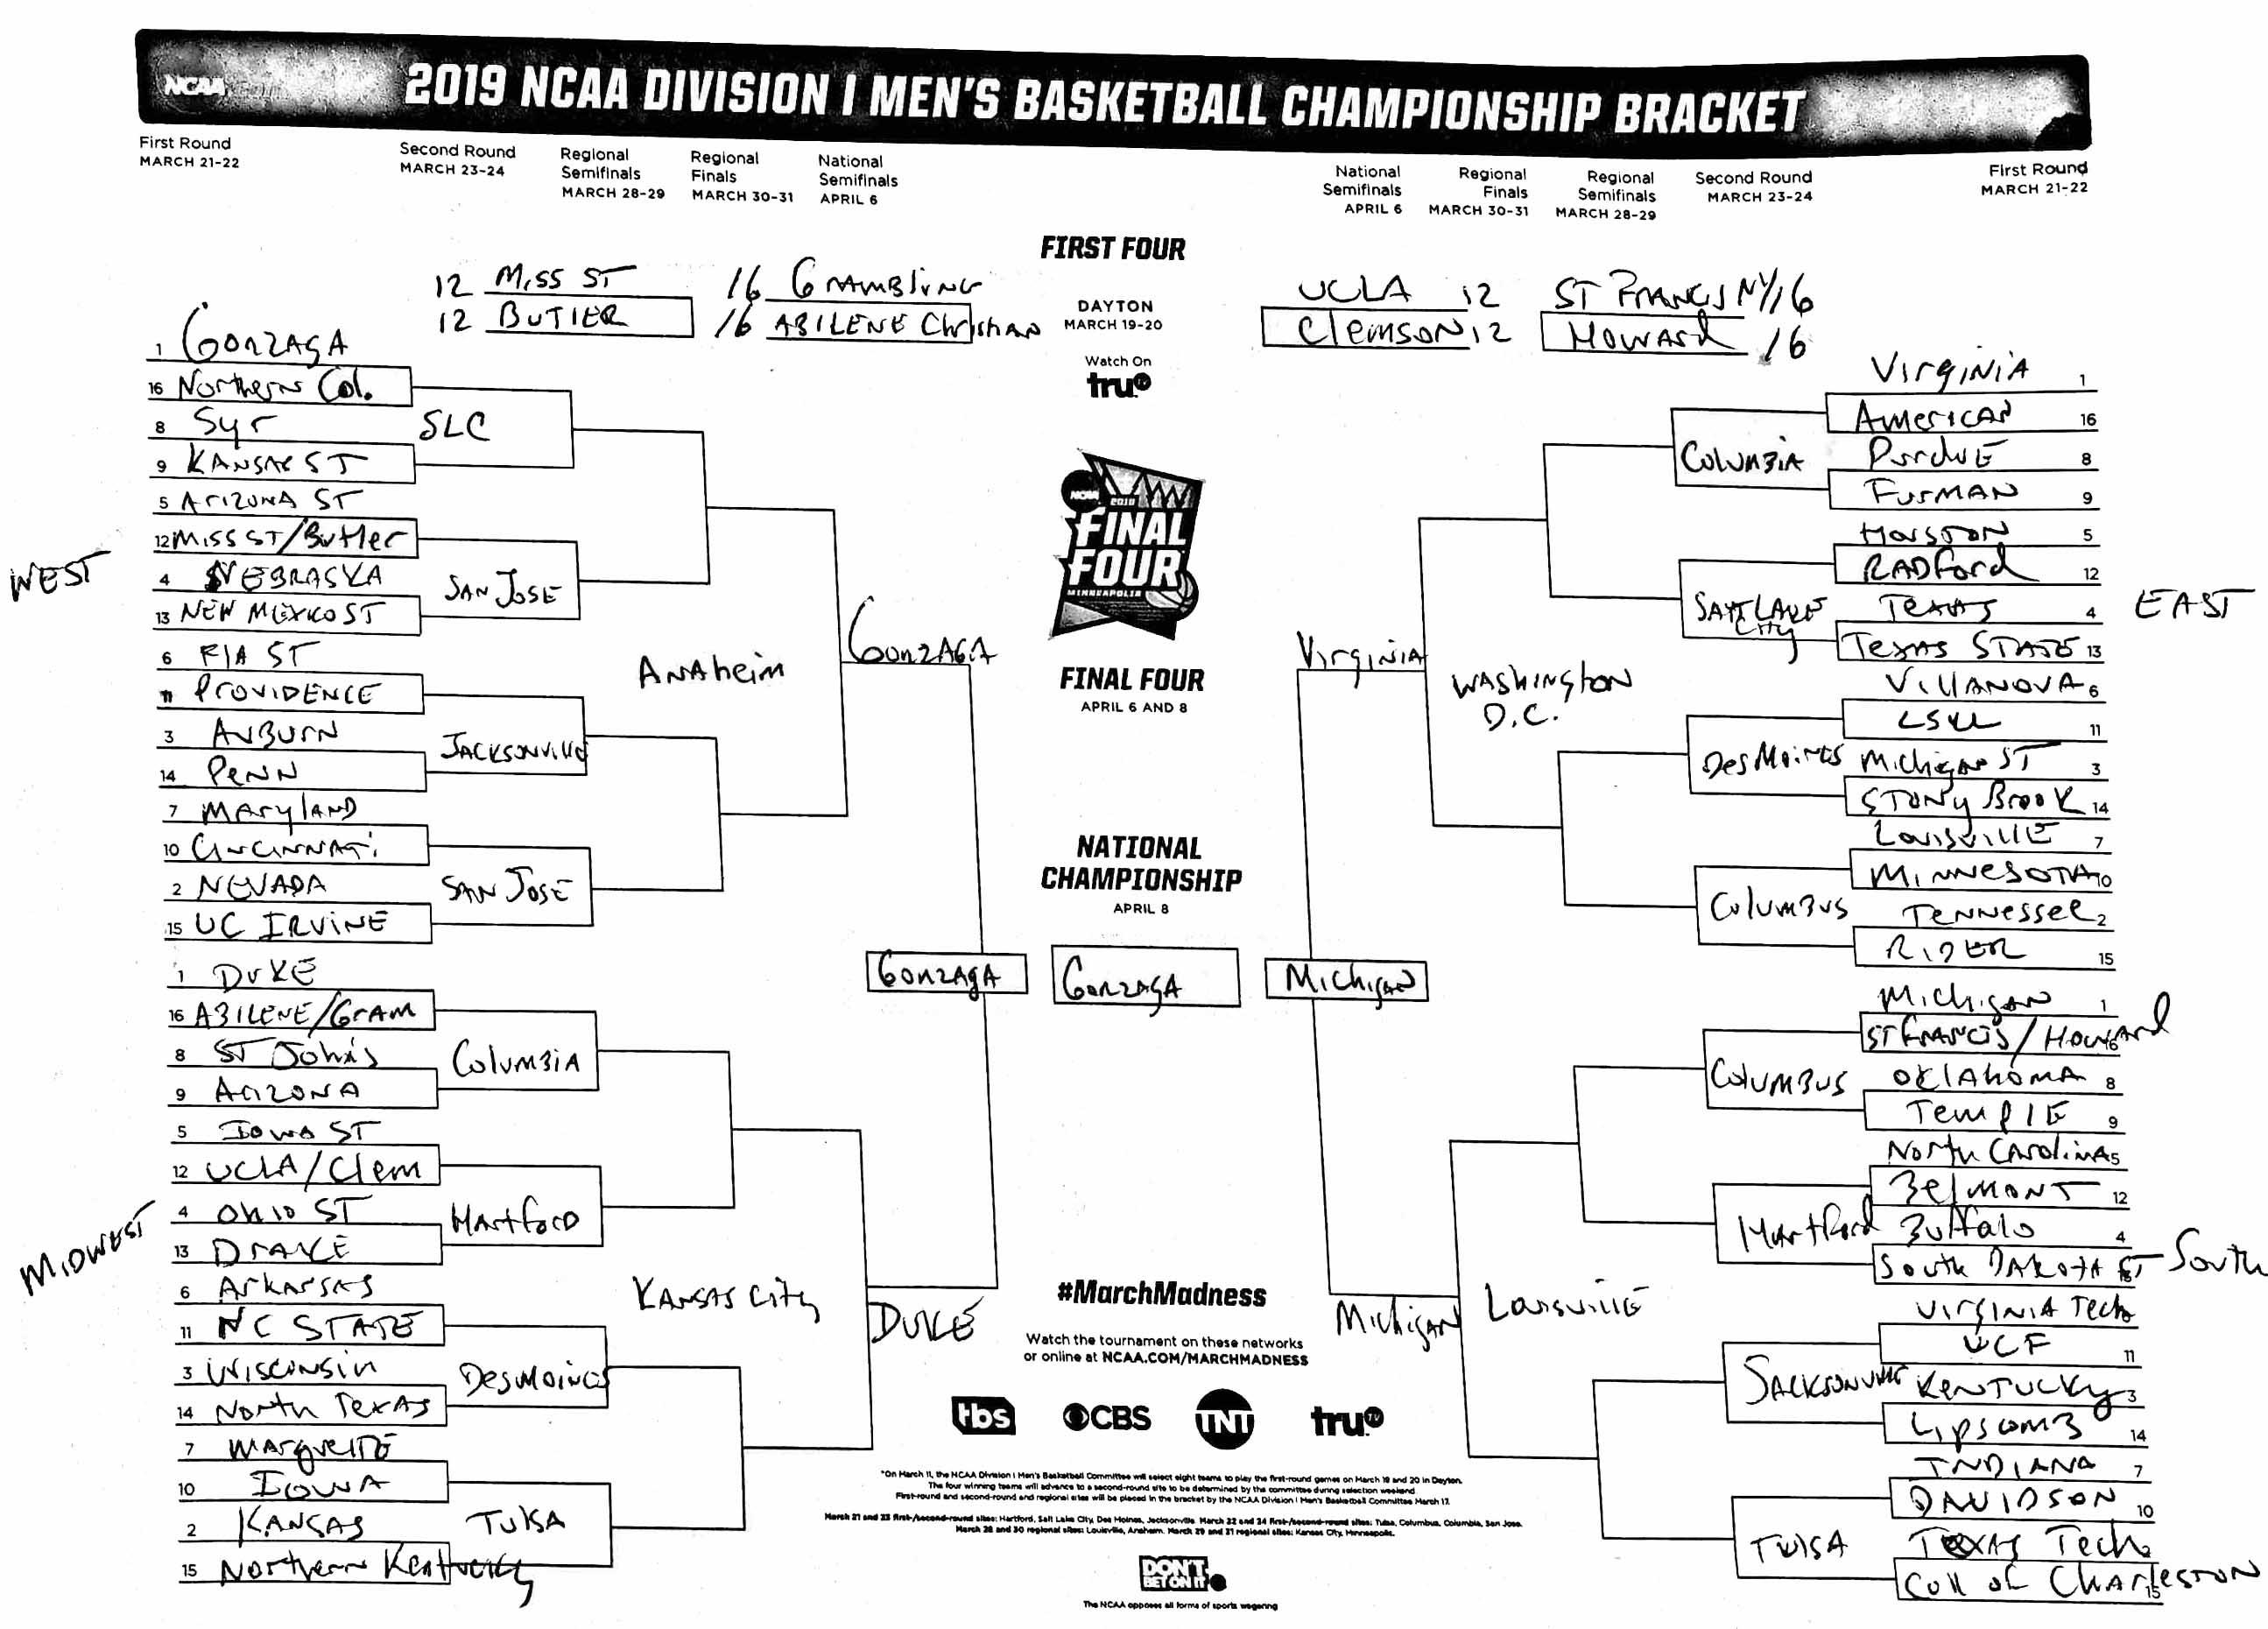 Andy Katz filled out his predictions for the 2019 NCAA tournament